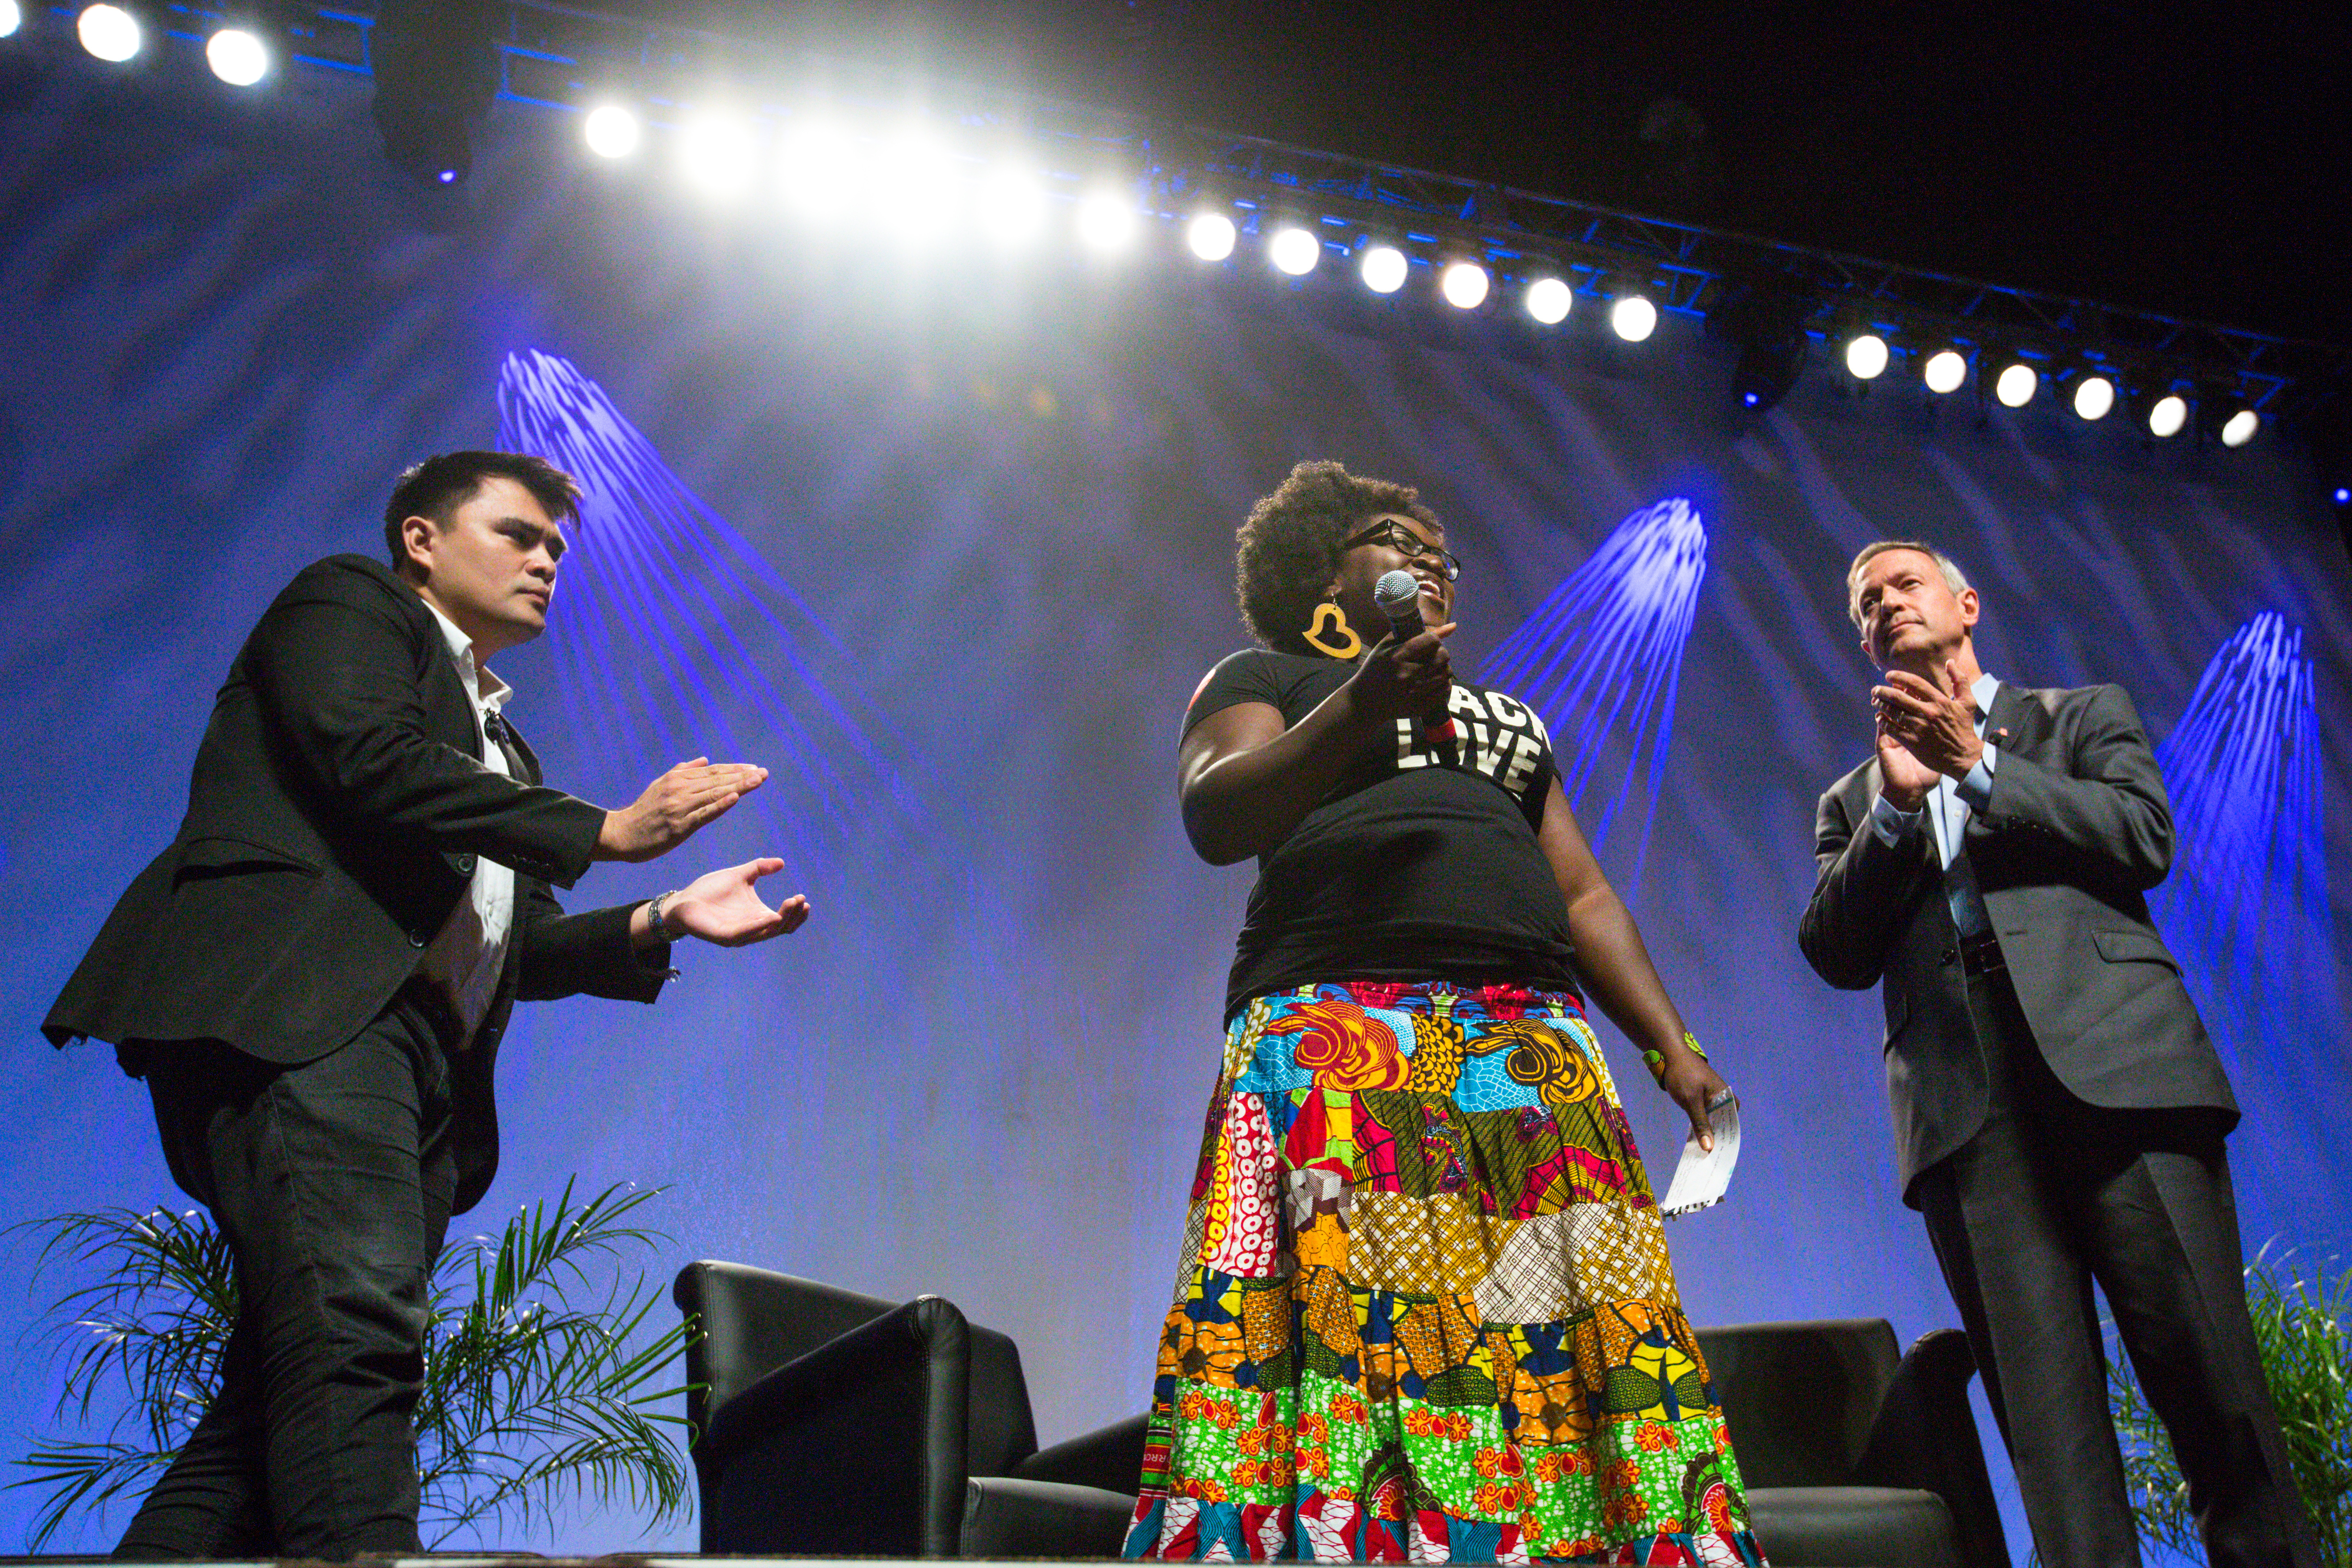 Former Gov. Martin O'Malley (D-MD) (R), and moderator Jose Antonio Vargas (R), listen to Tia Oso, the National Coordinator for the Black Immigration Network, during an interruption to O'Malley's speech, at the Netroots Nation 2015 Presidential Town Hall with at the Phoenix Convention Center on July 18, 2015 in Phoenix.